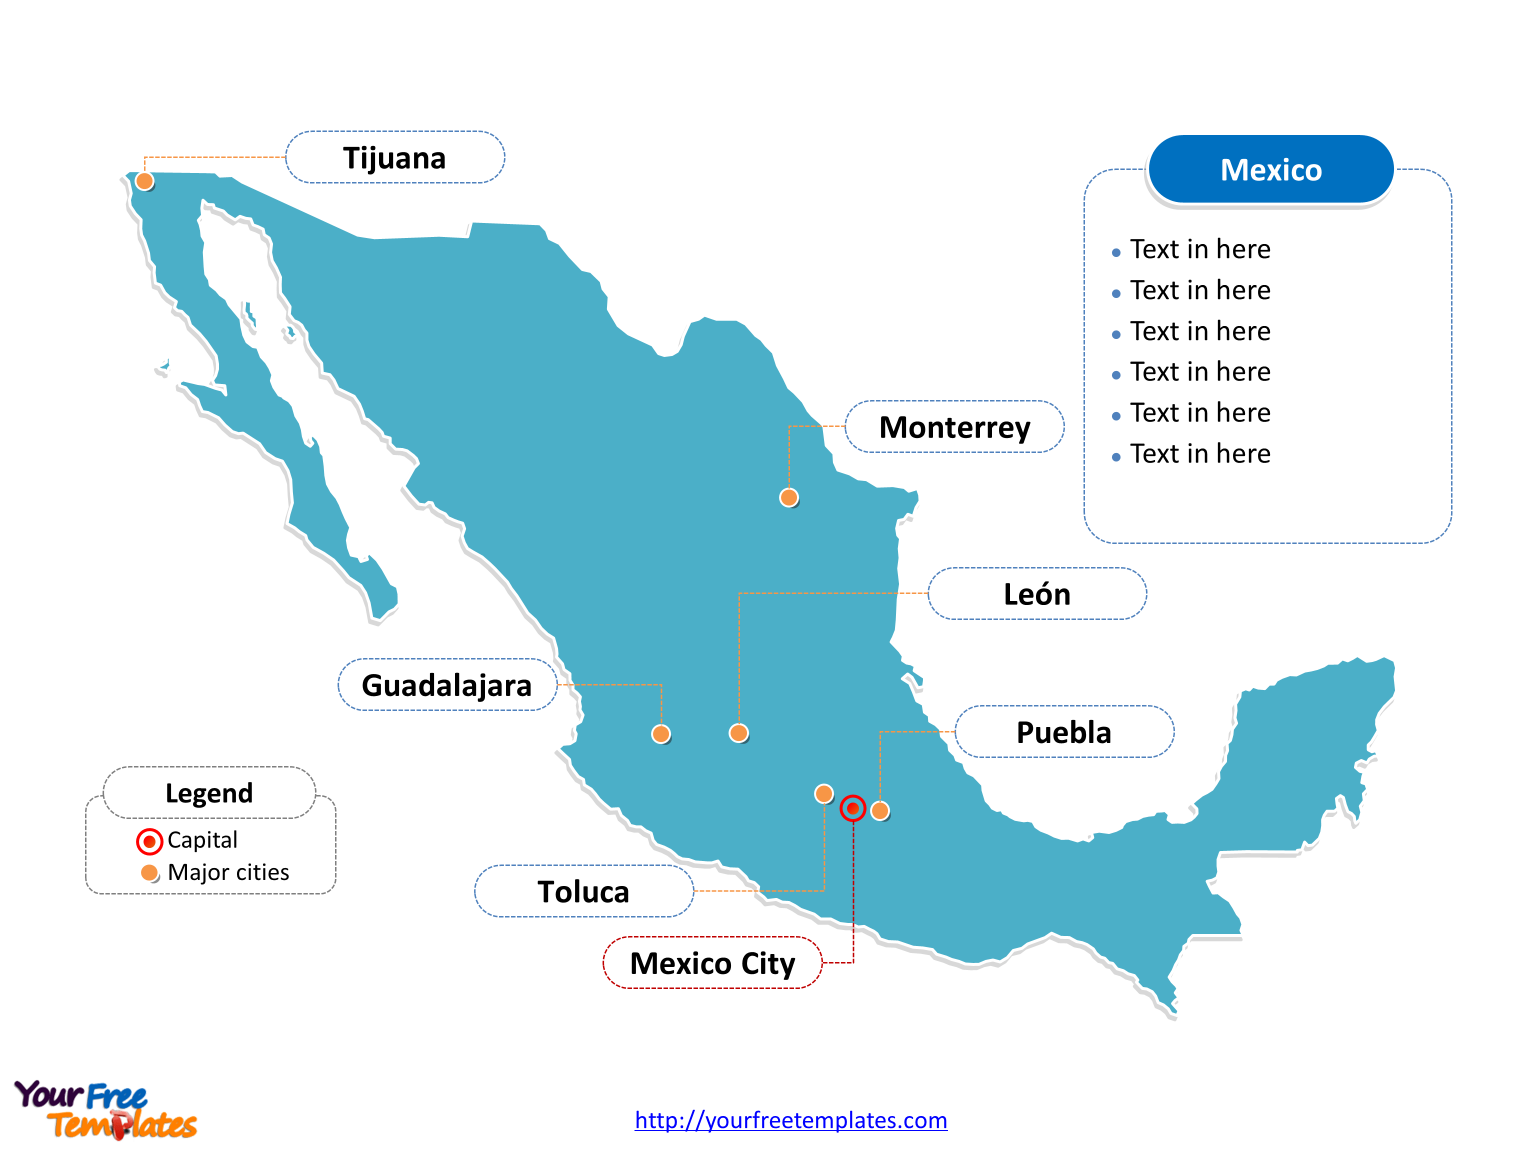 Free Mexico Powerpoint Map Free Powerpoint Templates